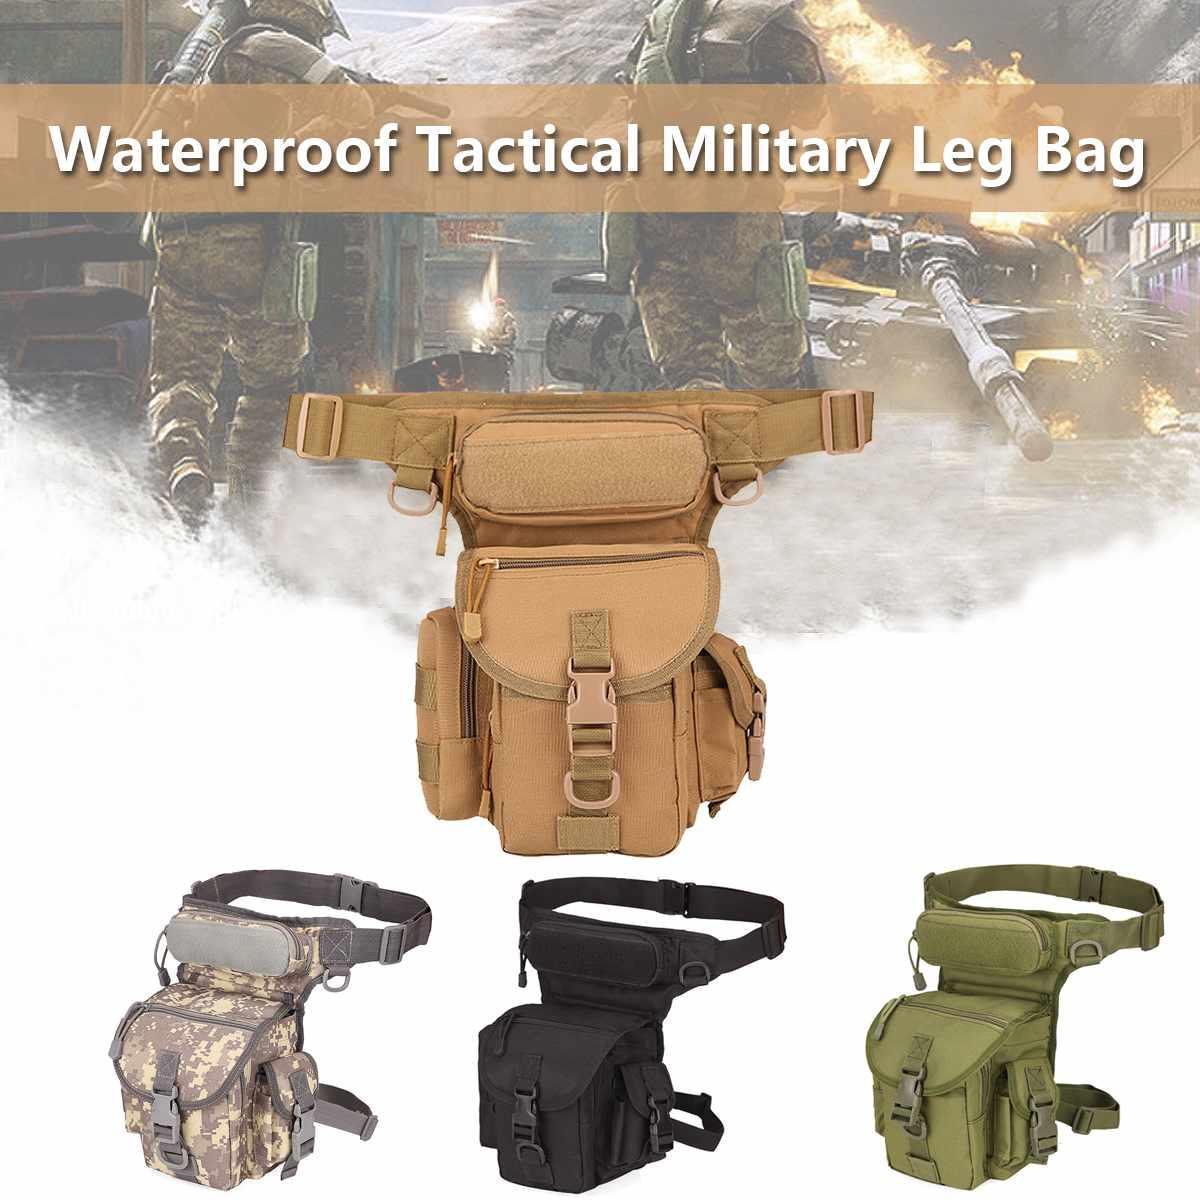 Militaire tactique goutte jambe sac outil Fanny cuisse Pack chasse sac taille Pack moto équitation hommes 800D militaire taille Packs